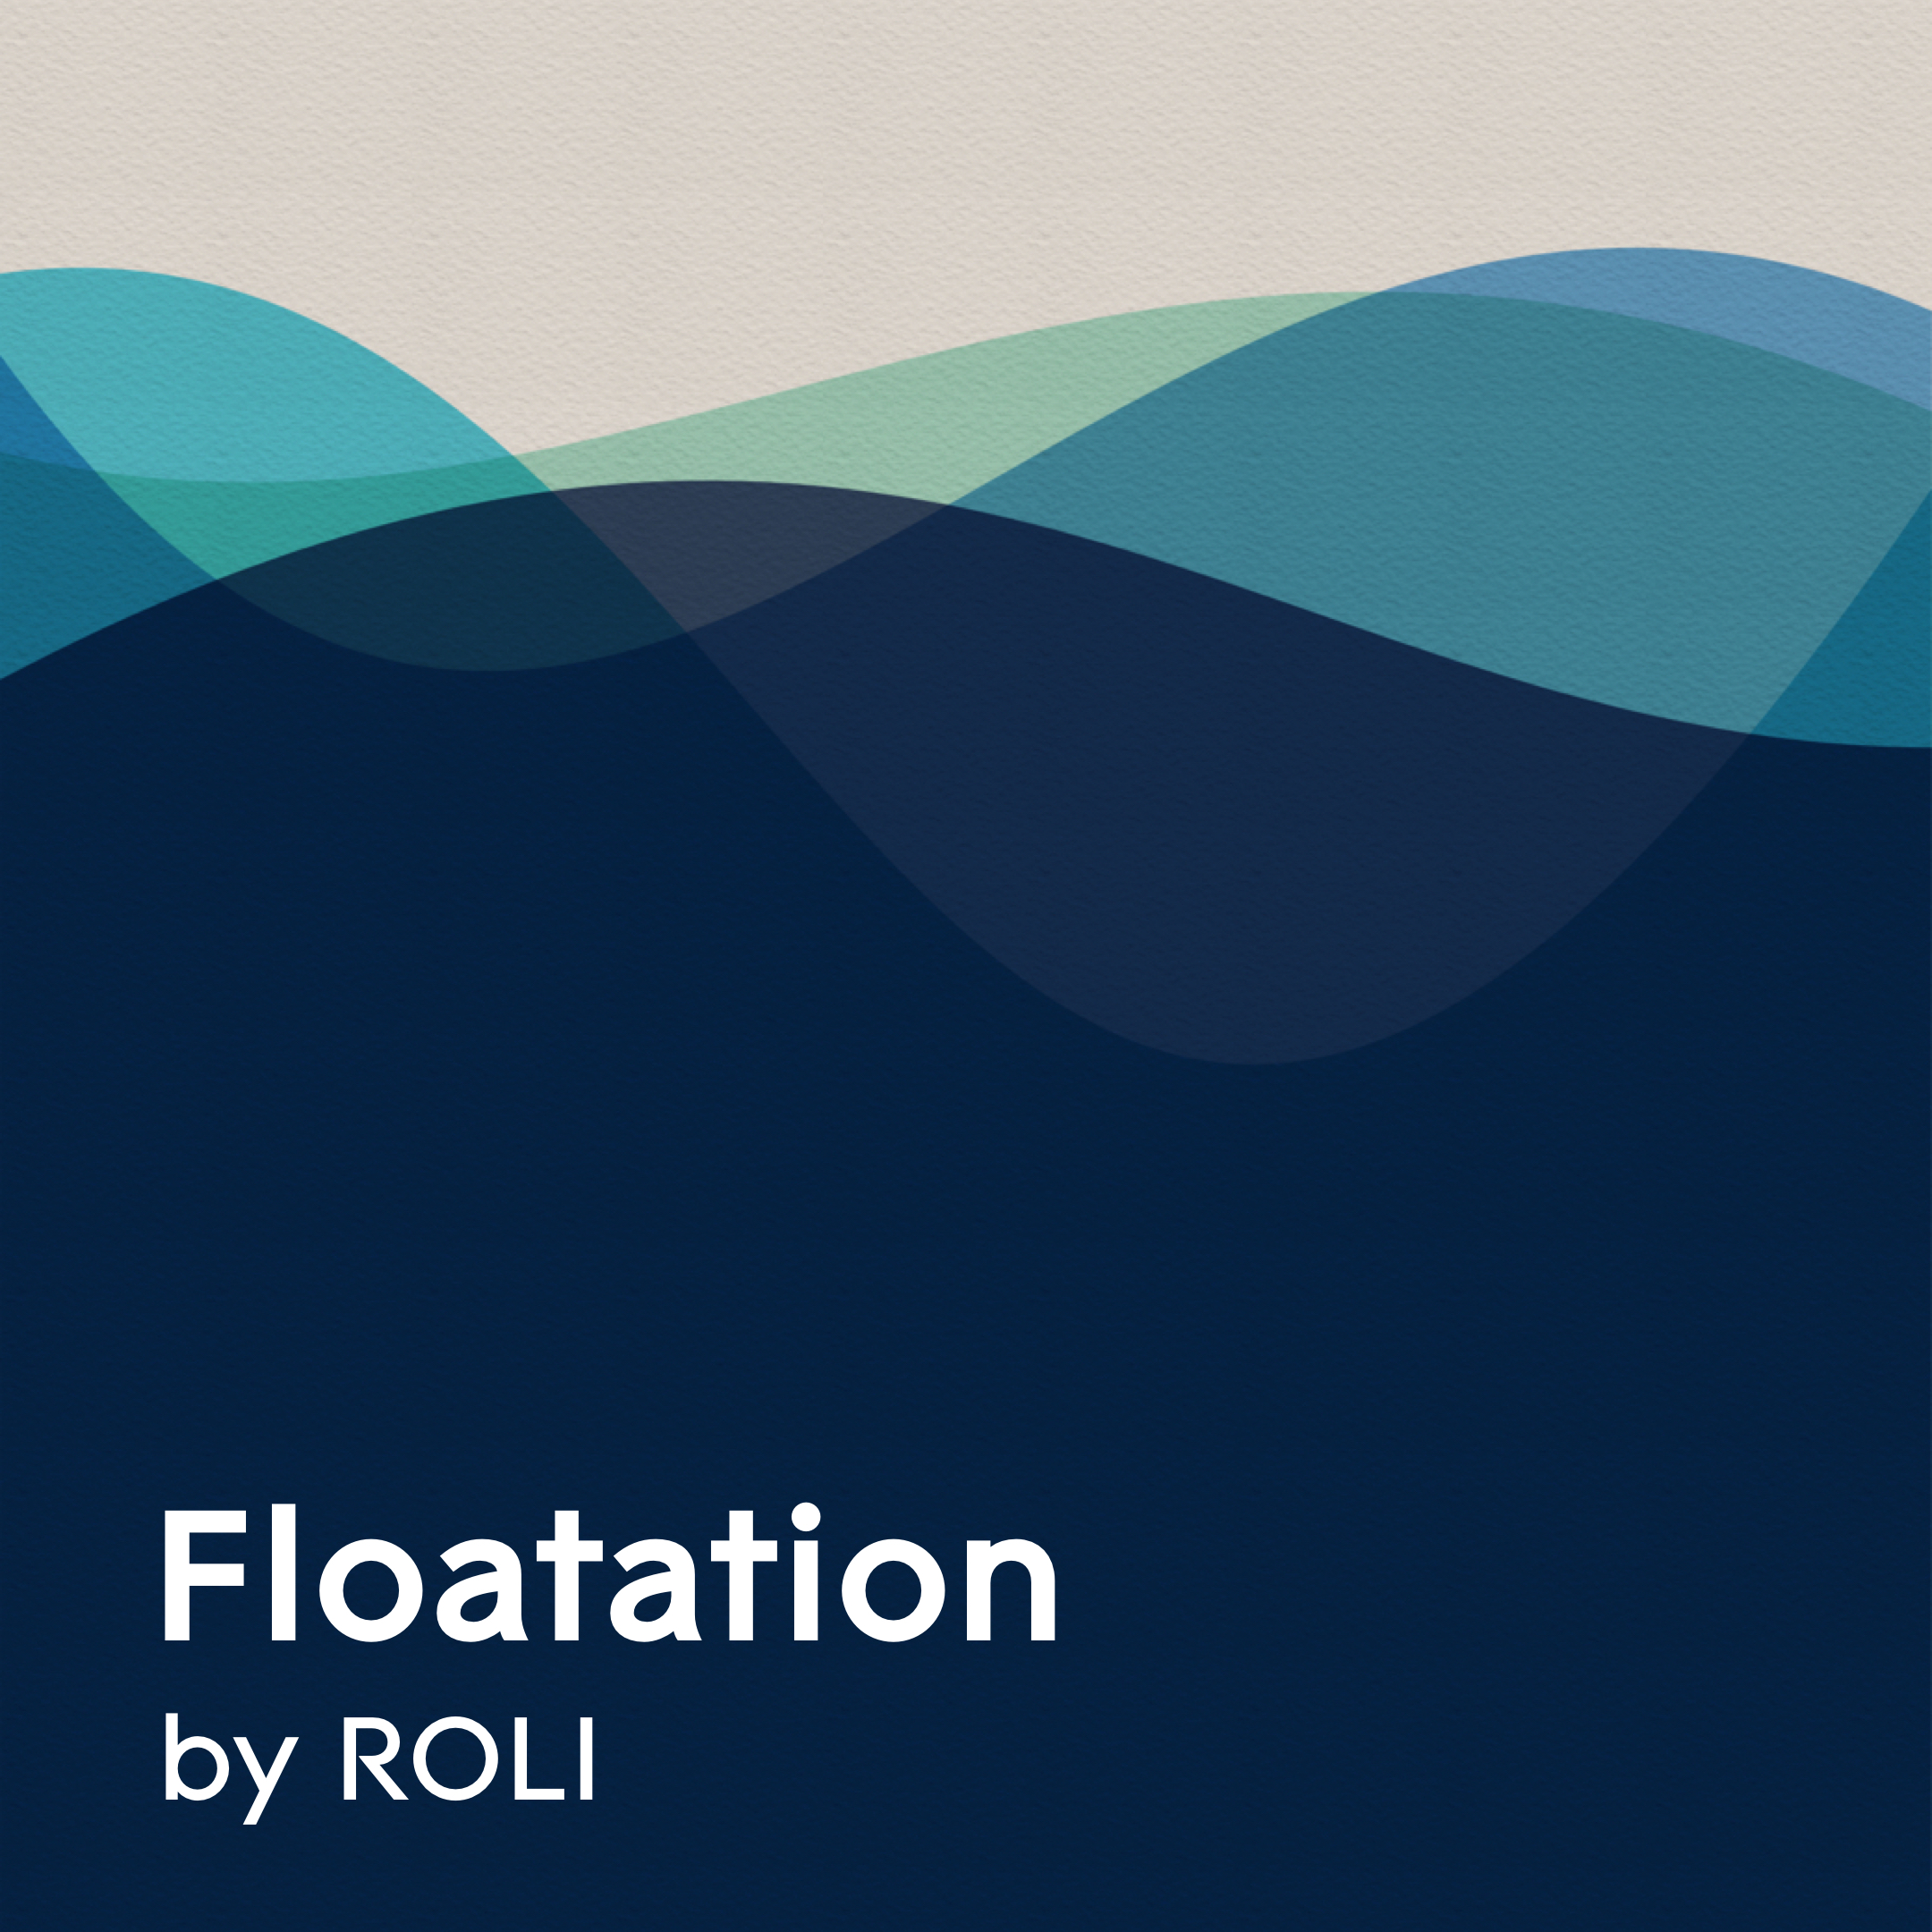 Floatation album art